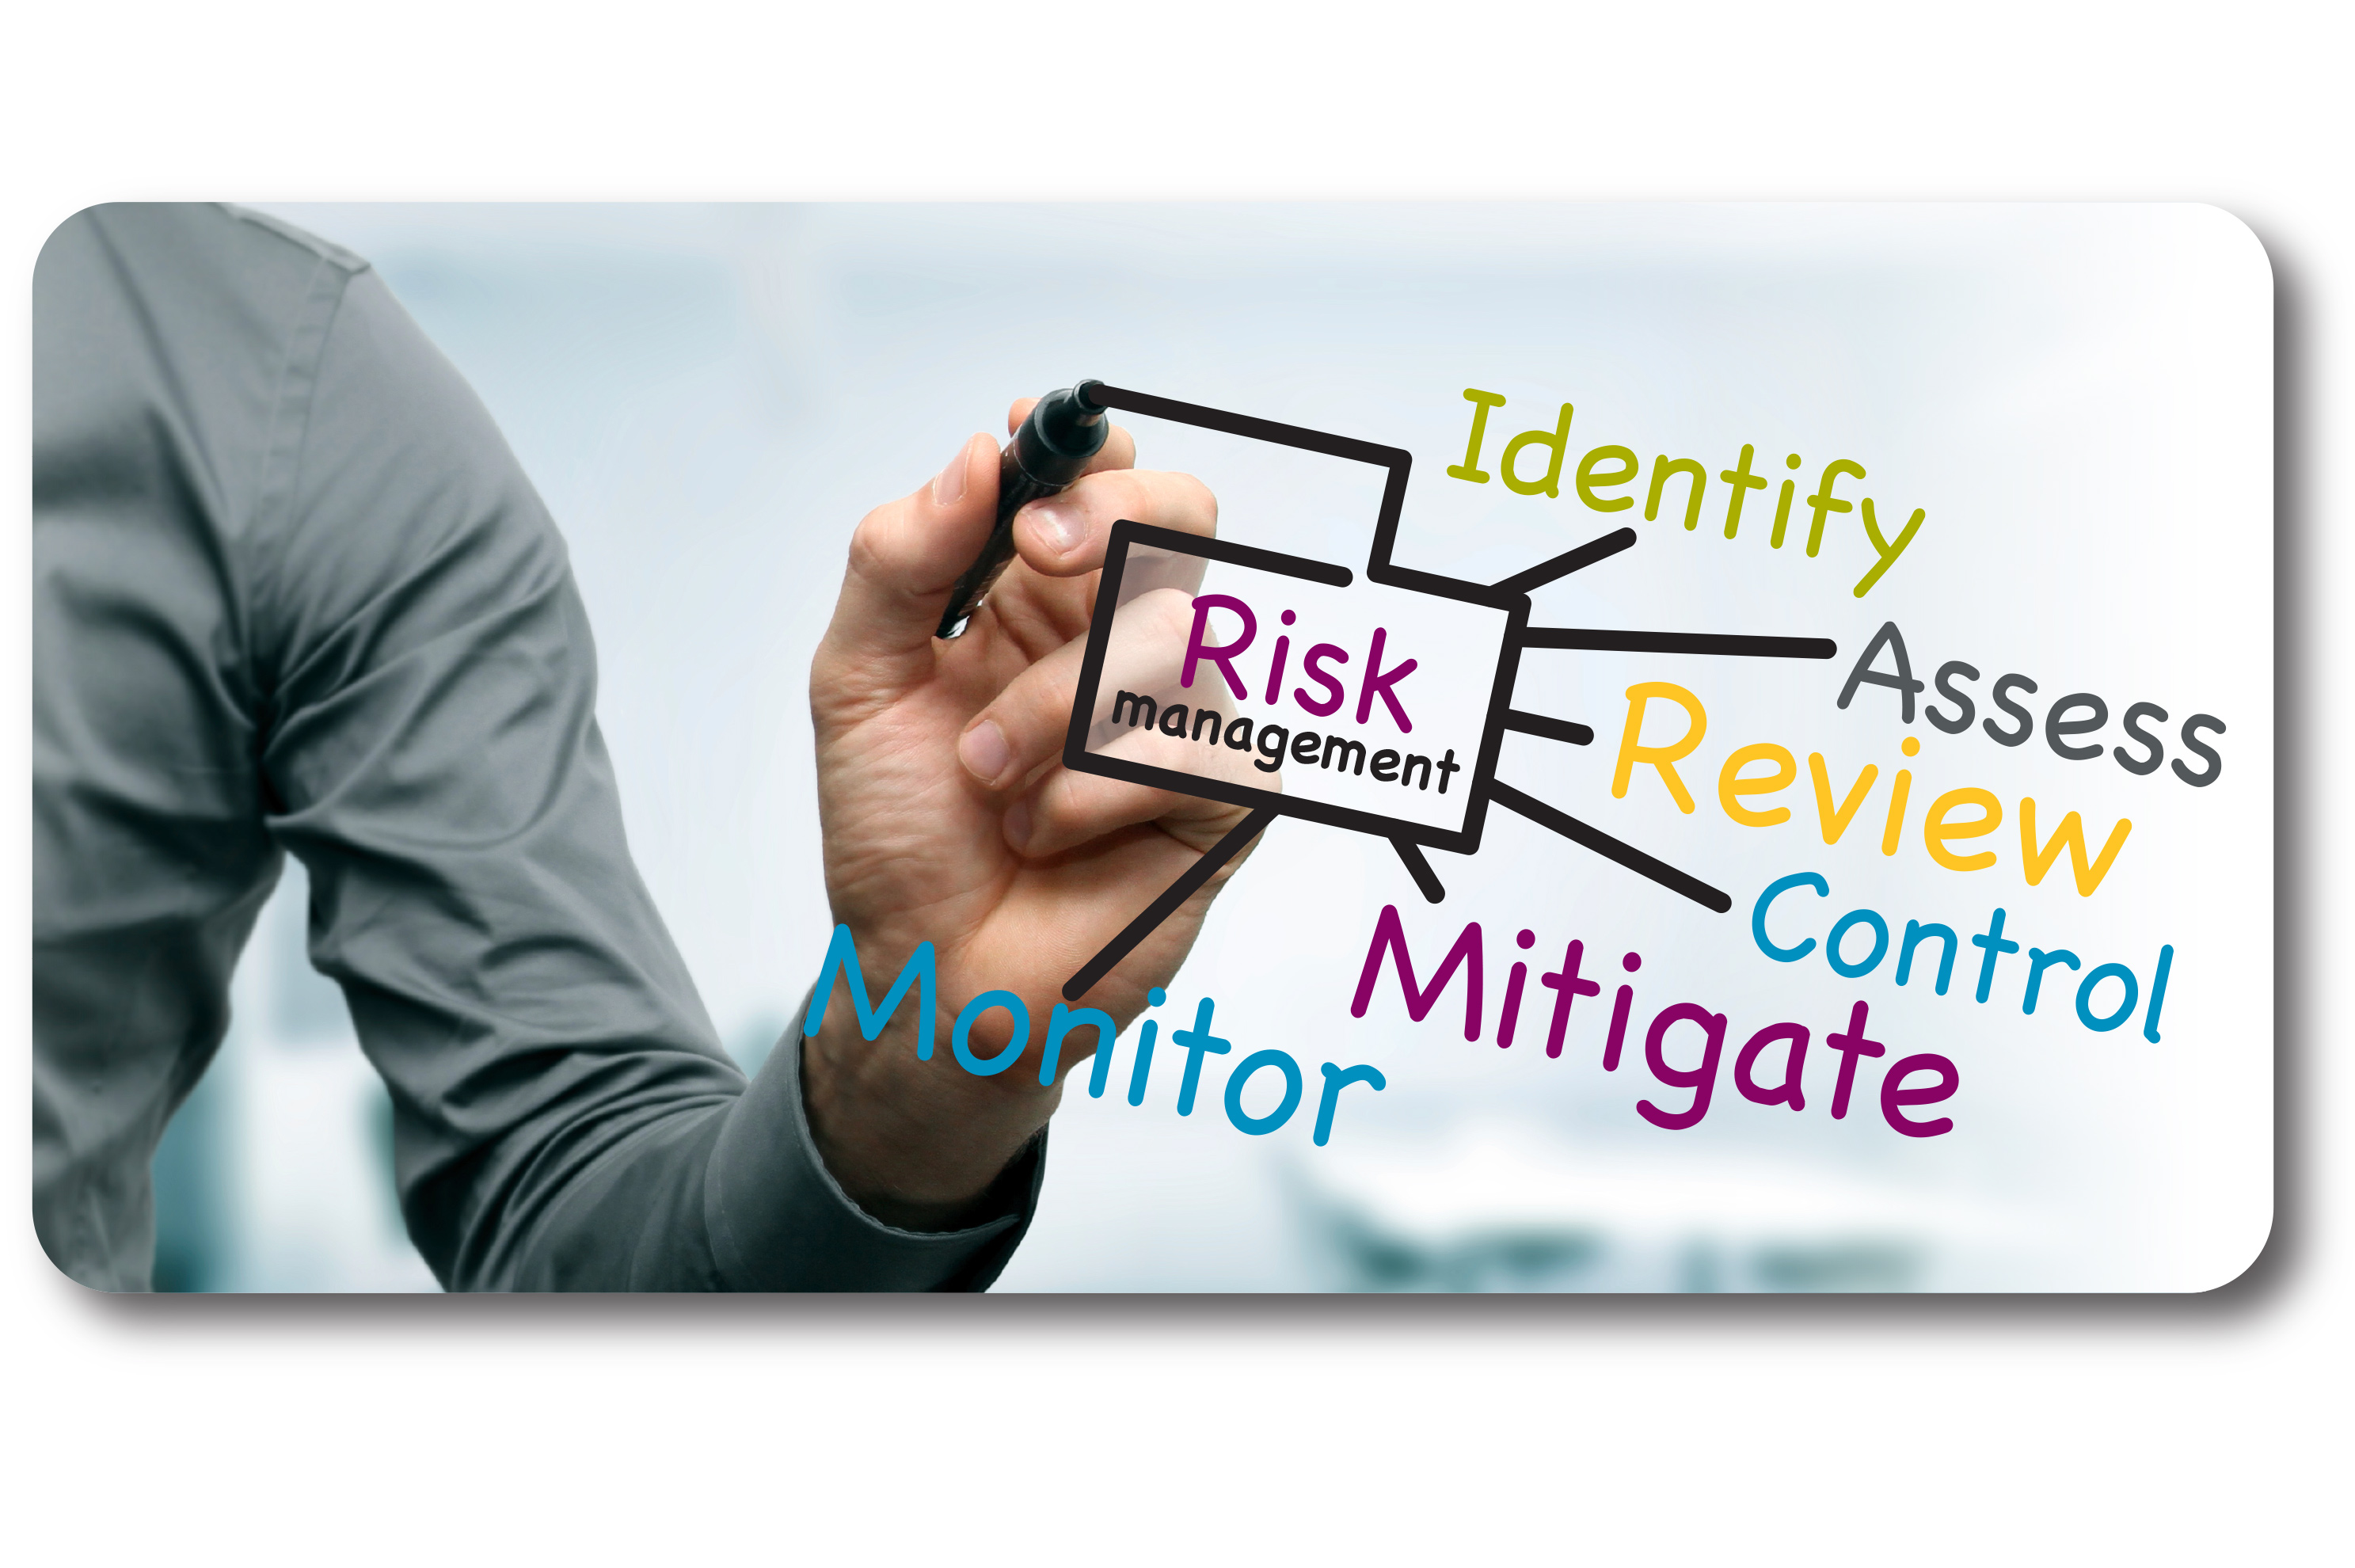 risk management in childcare services Risk management services (rms) serves over 250 organizations within dhs and state employees by providing insurance coverage, managing and administering claims to ensure appropriate resolution, cost-effectiveness, identifying loss exposures, and promoting loss control.